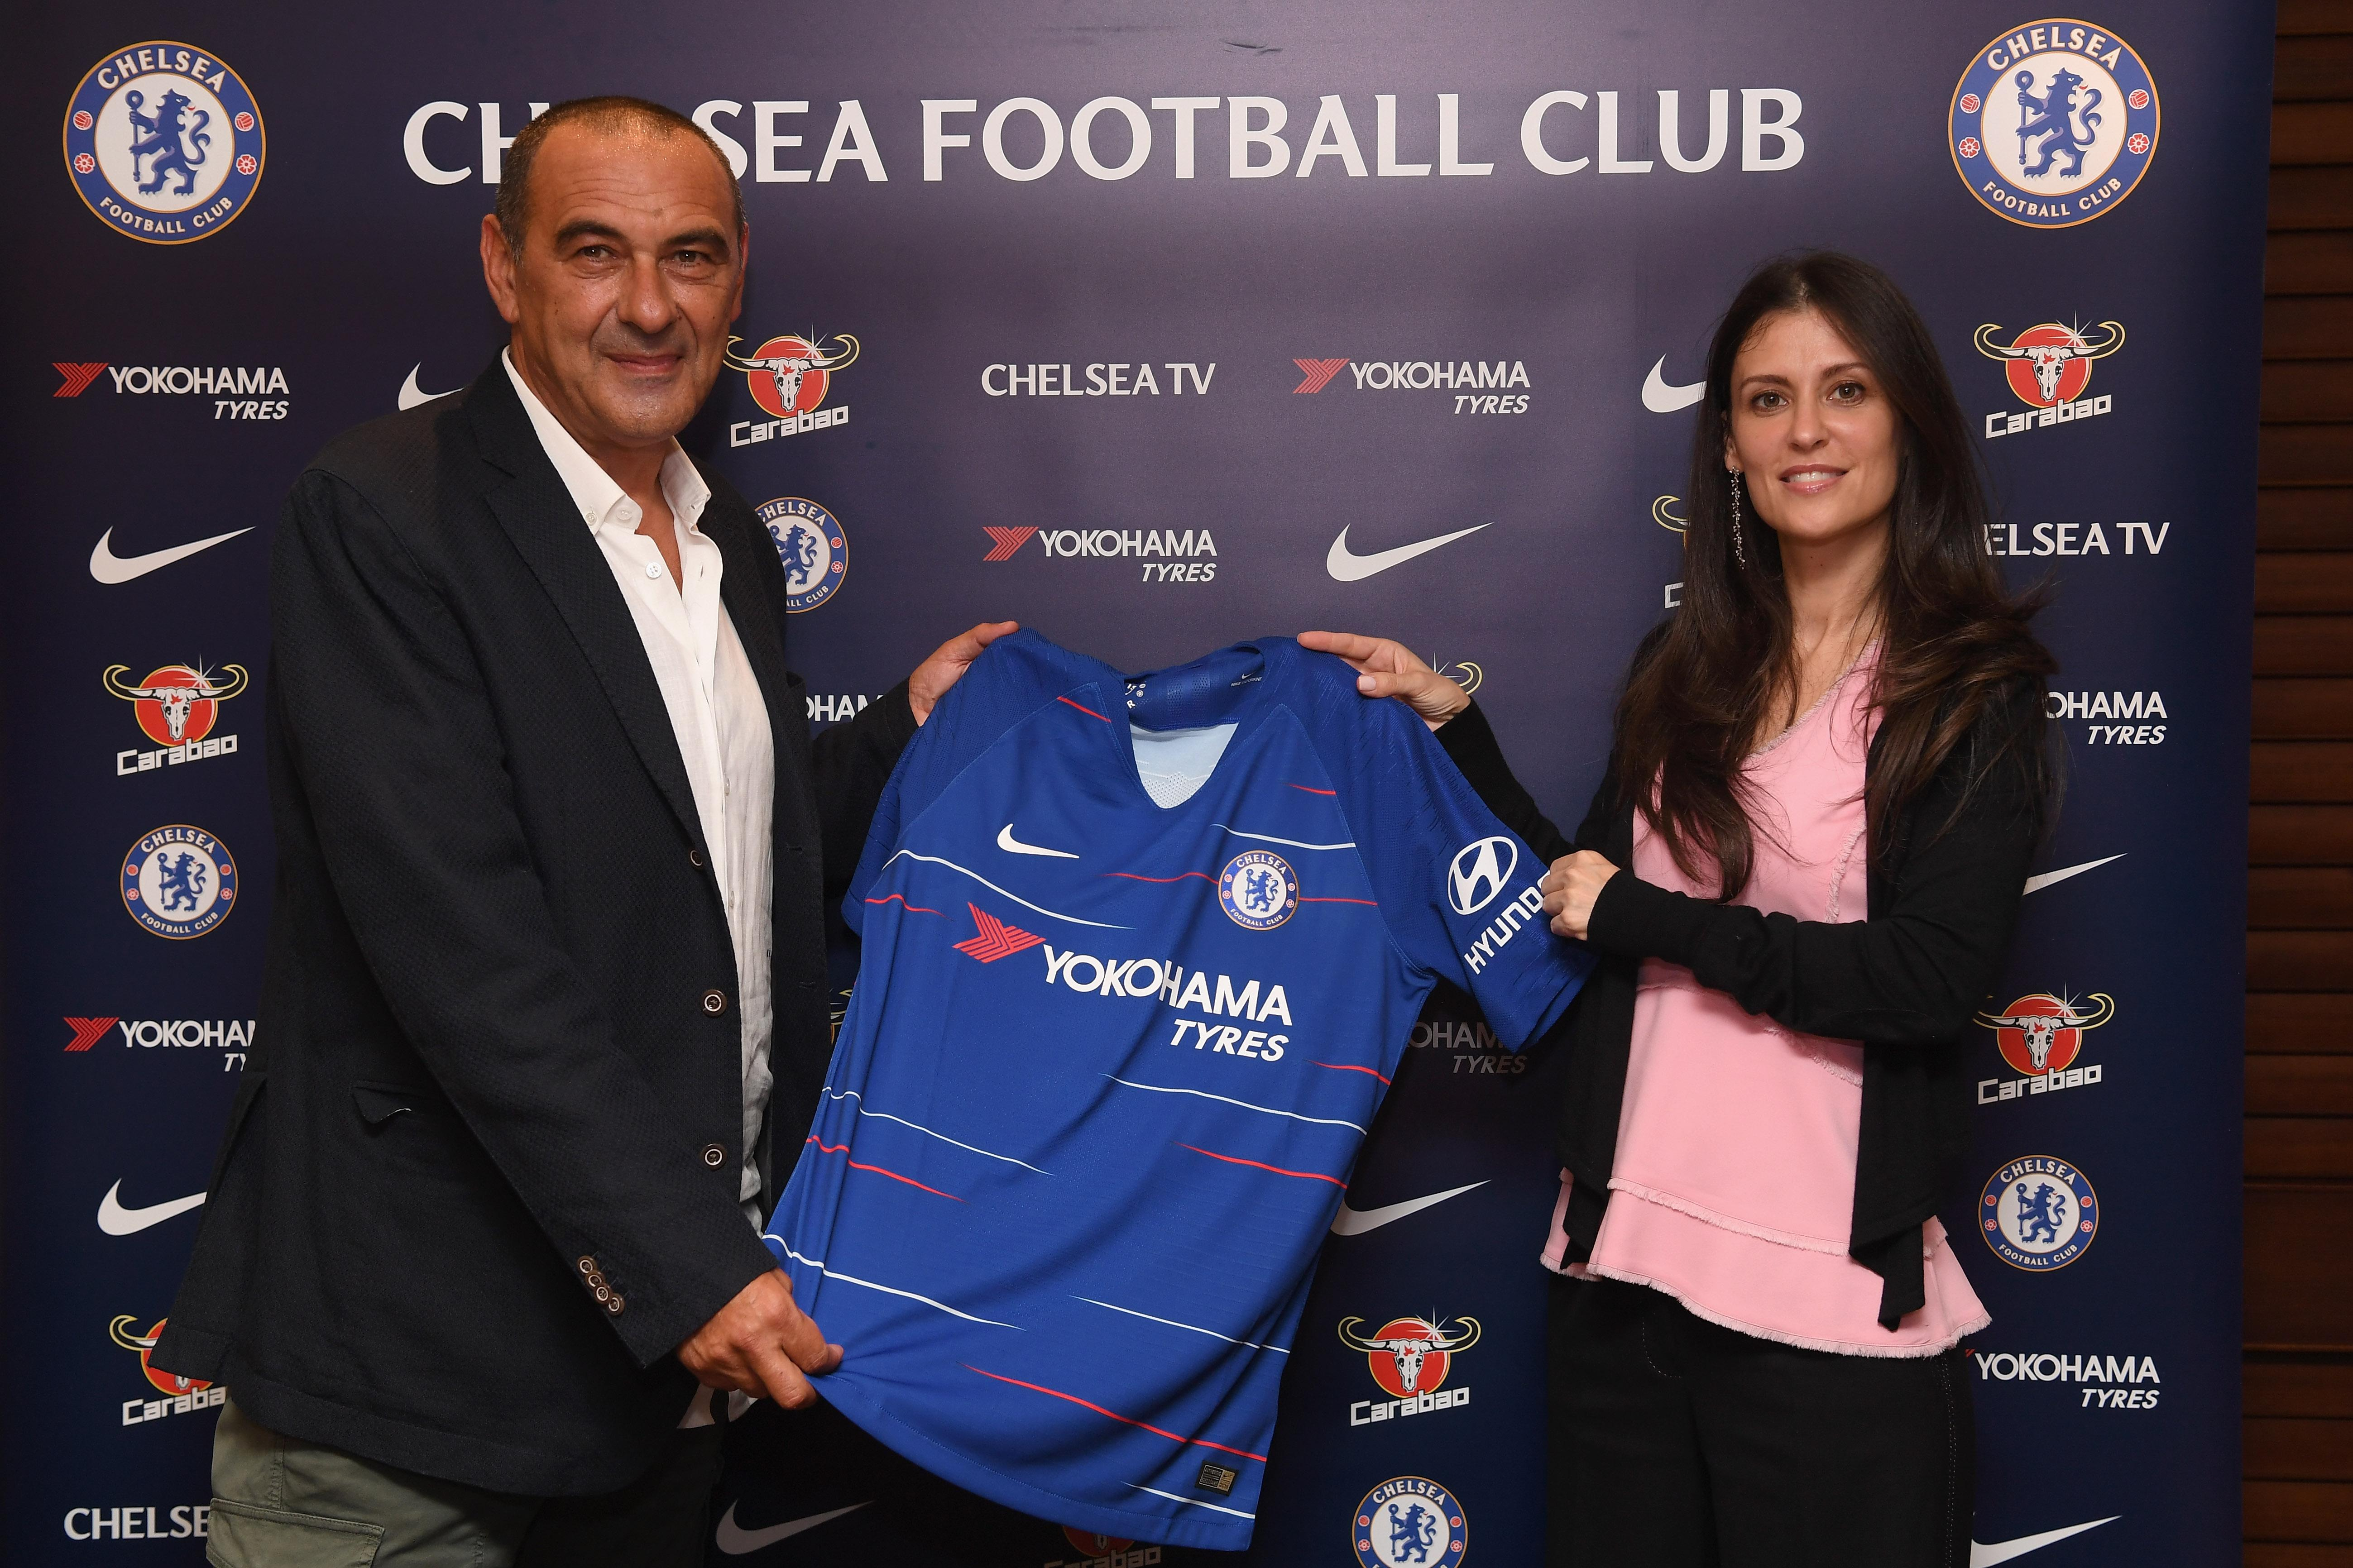 Maurizio Sarri was announced as Chelsea manager on July 14